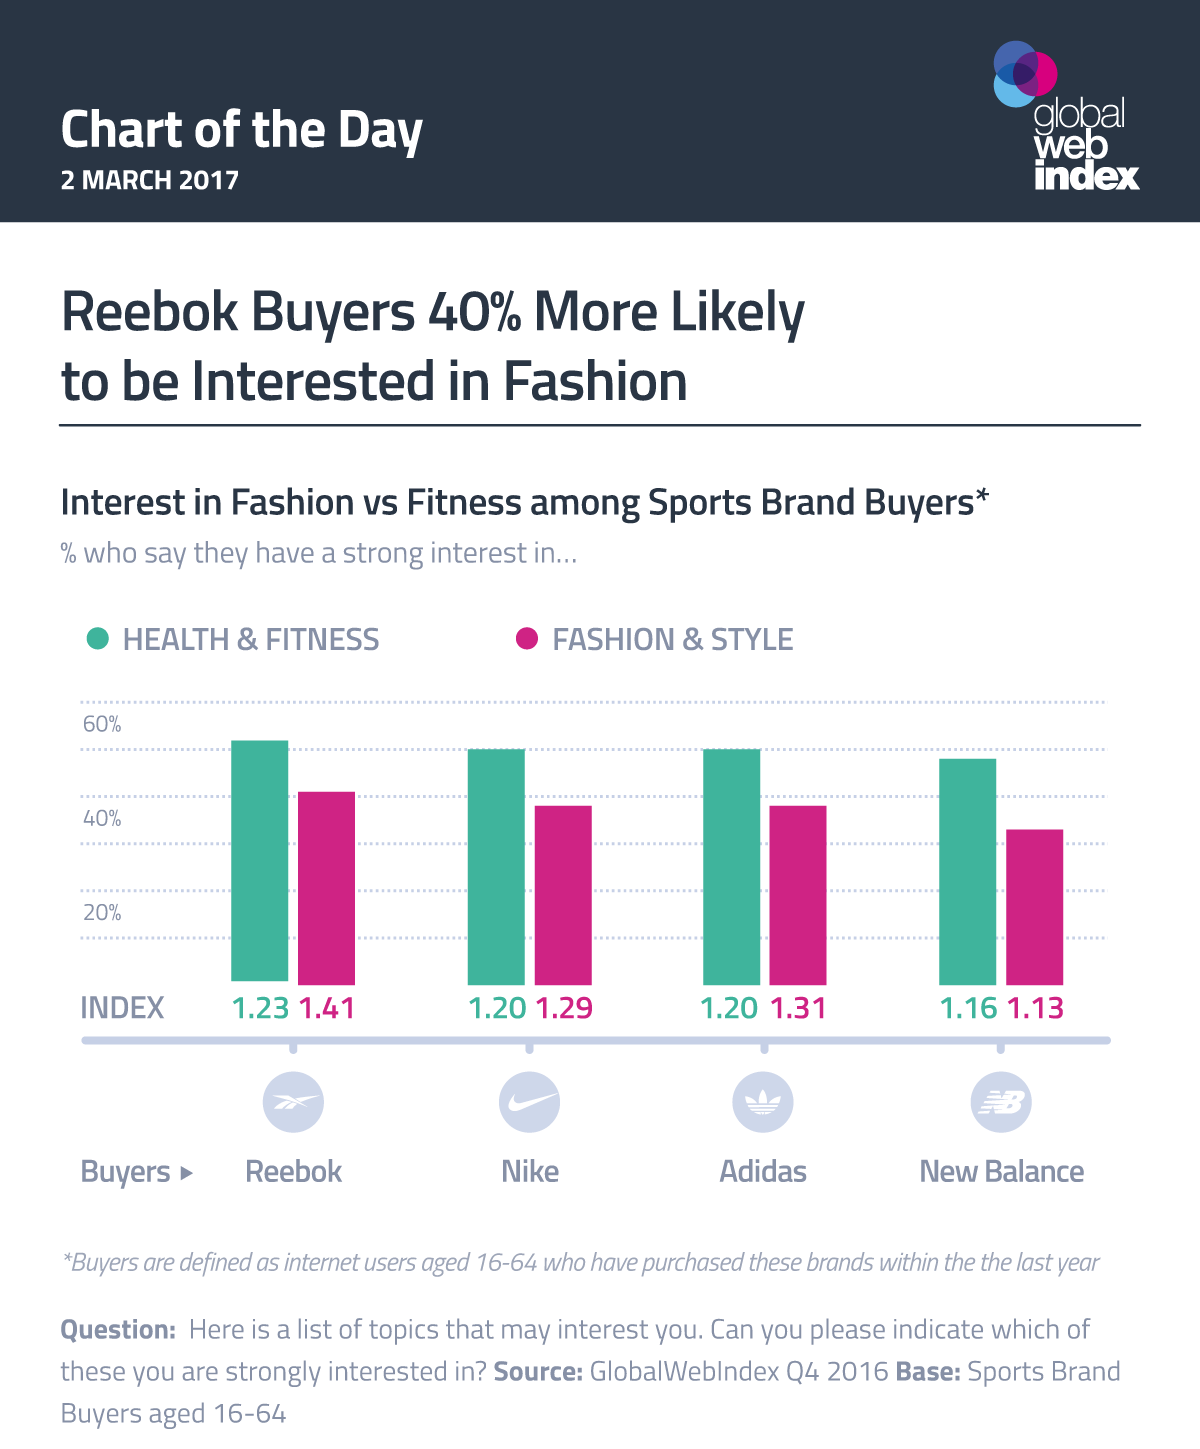 Reebok Buyers 40% More Likely to be Interested in Fashion